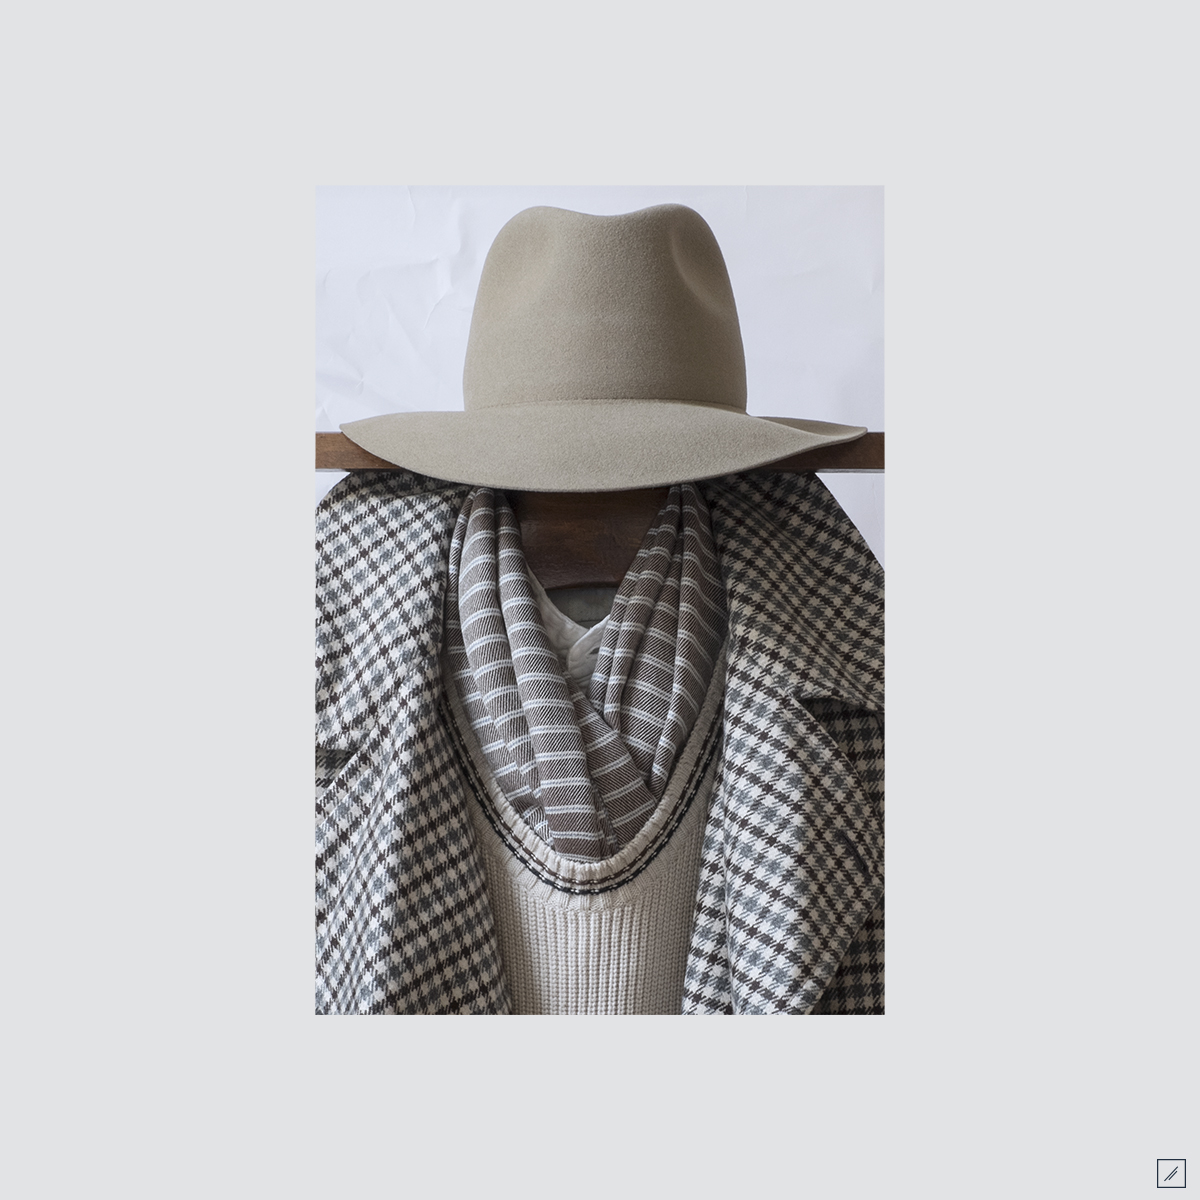 la-stoffa :      sandy pt. 2      Hat - Rabbit felt rollable       Woven scarf - Muted candy stripes